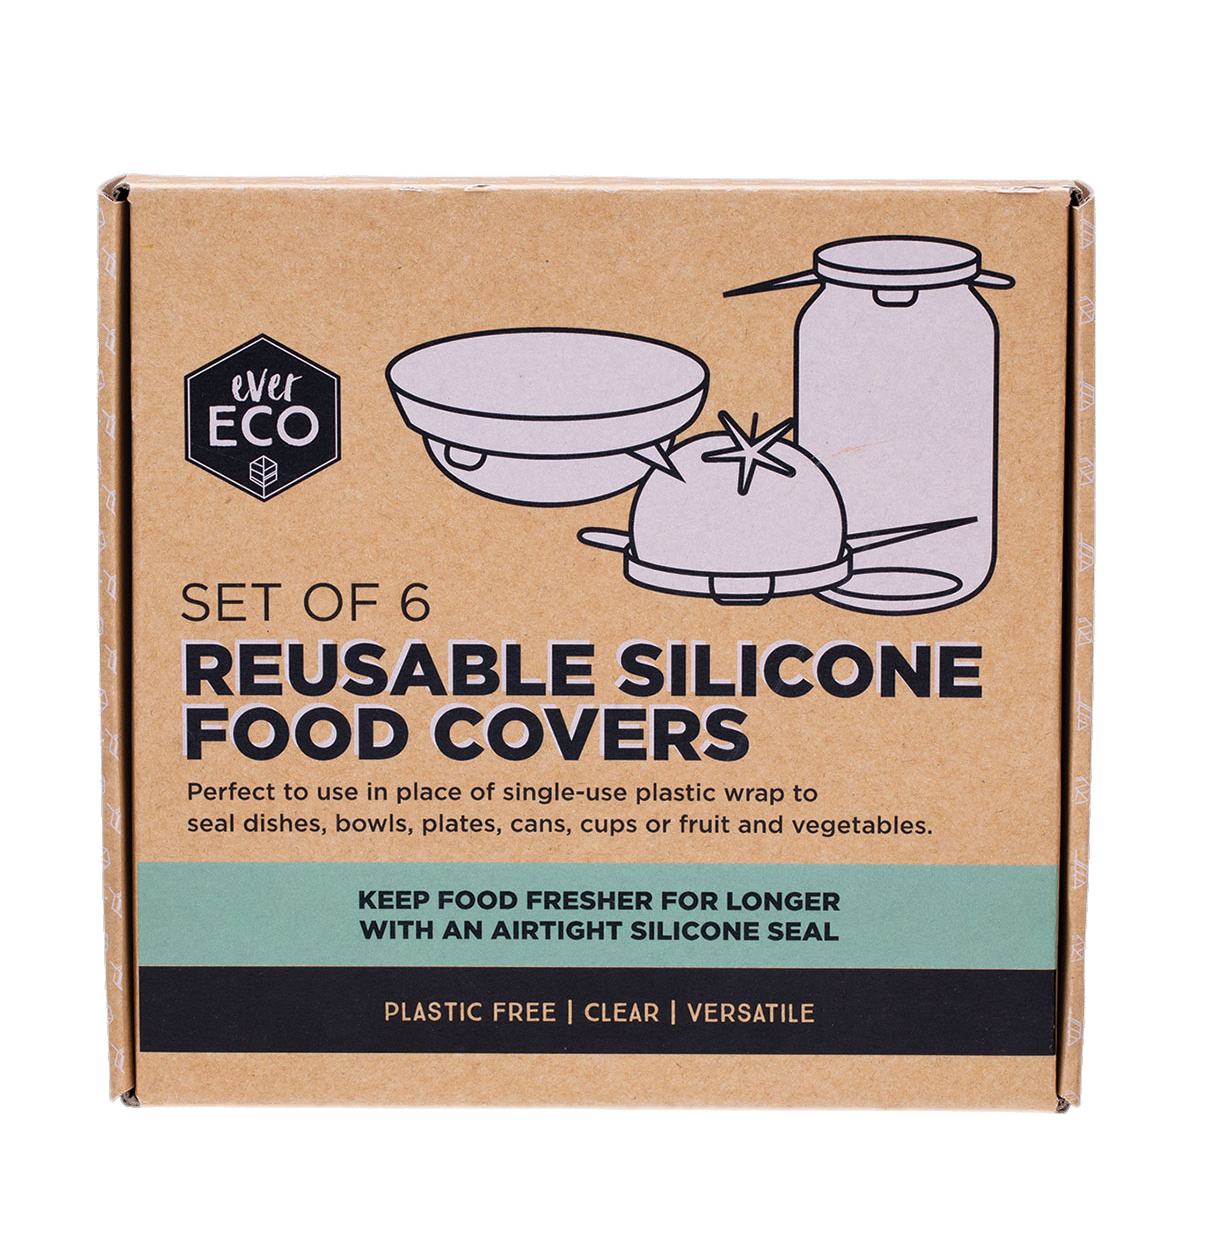 Ever Eco Silicone Food Covers-Set of 6 - Plastic Free Living